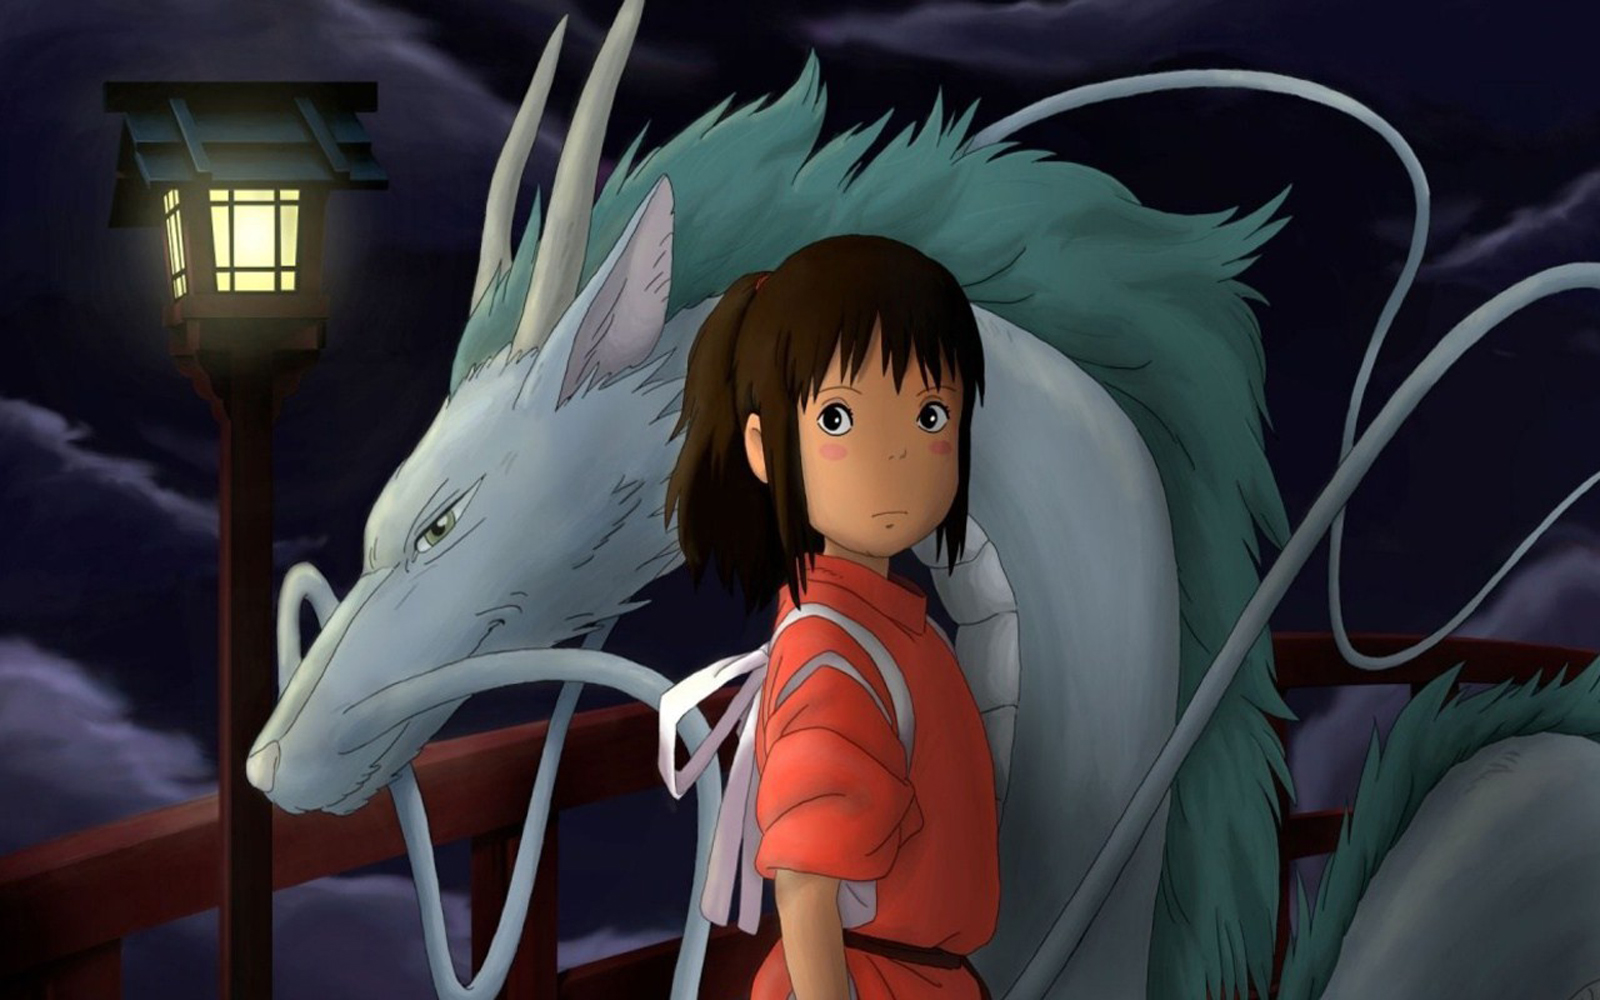 http://4.bp.blogspot.com/-9-Swpi44Qno/TnpIABKy8cI/AAAAAAAABQI/umEU2jk1cEU/s1600/Spirited_Away_Anime_HD_Haku_Theme_Desktop_Wallpapers_Vvallpaper.net.jpg